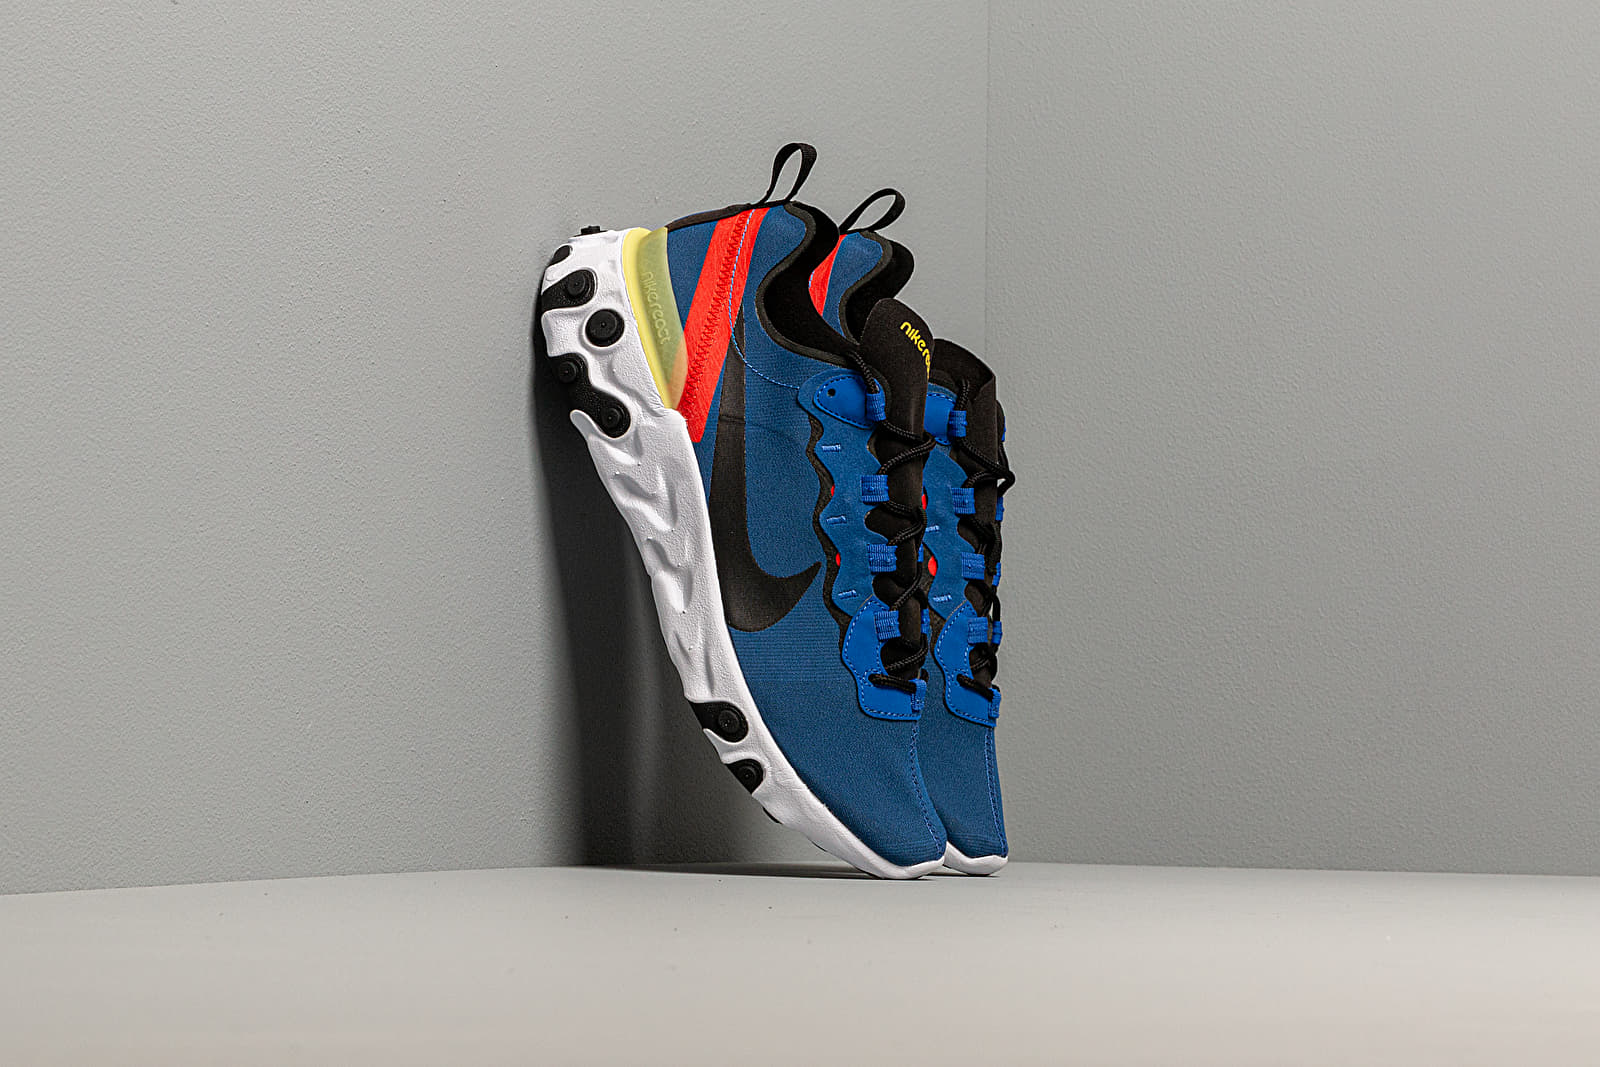 Pánské tenisky a boty Nike React Element 55 Game Royal/ Black-White-Dynamic Yellow